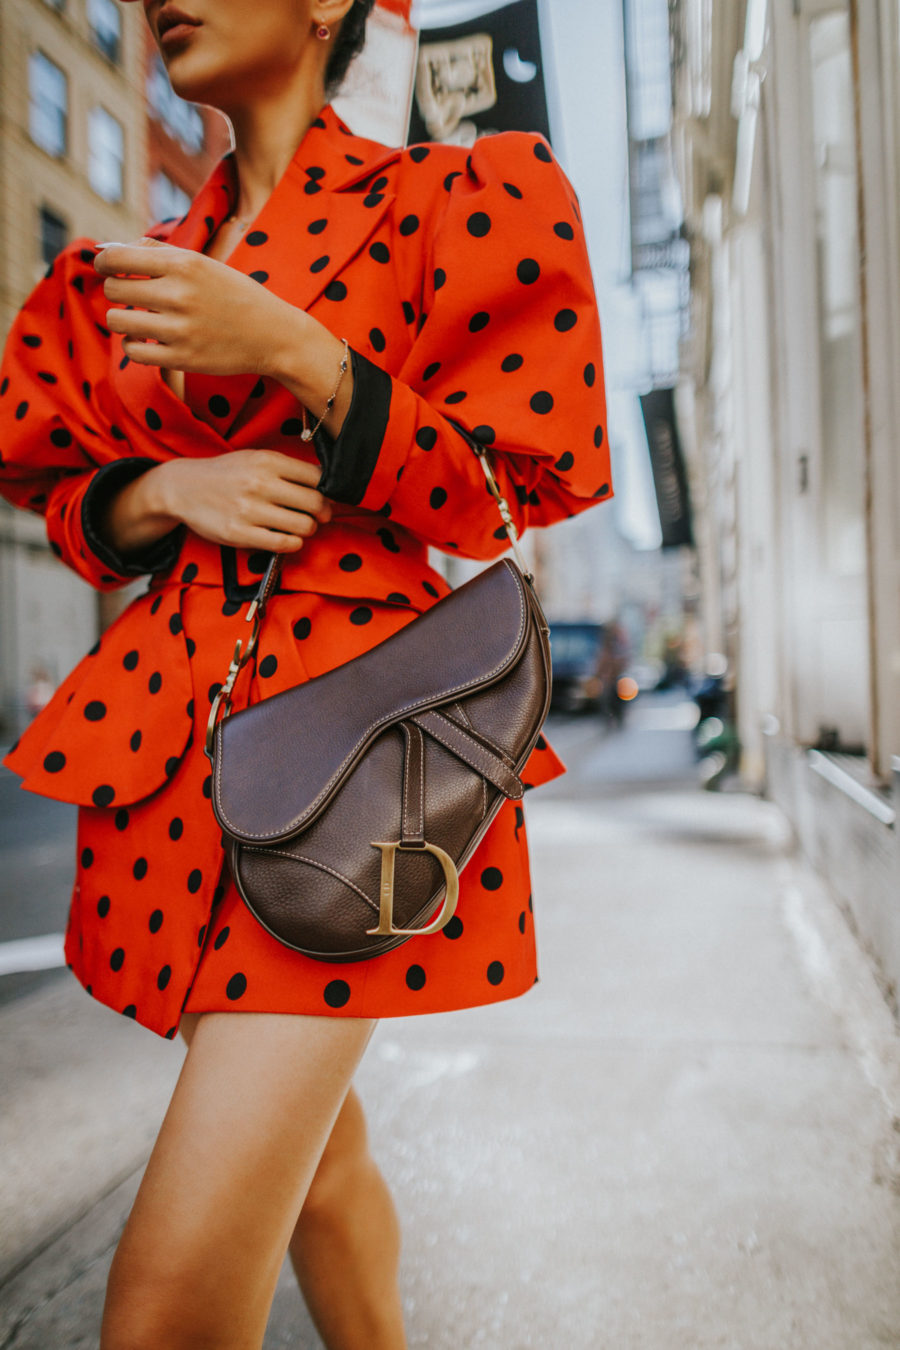 How to Manage a Full Day of Meetings in NYC - Uber's New Tools for Tricky Pickups, Red Polka Dot Dress, Dior Saddle Bag // Notjessfashion.com